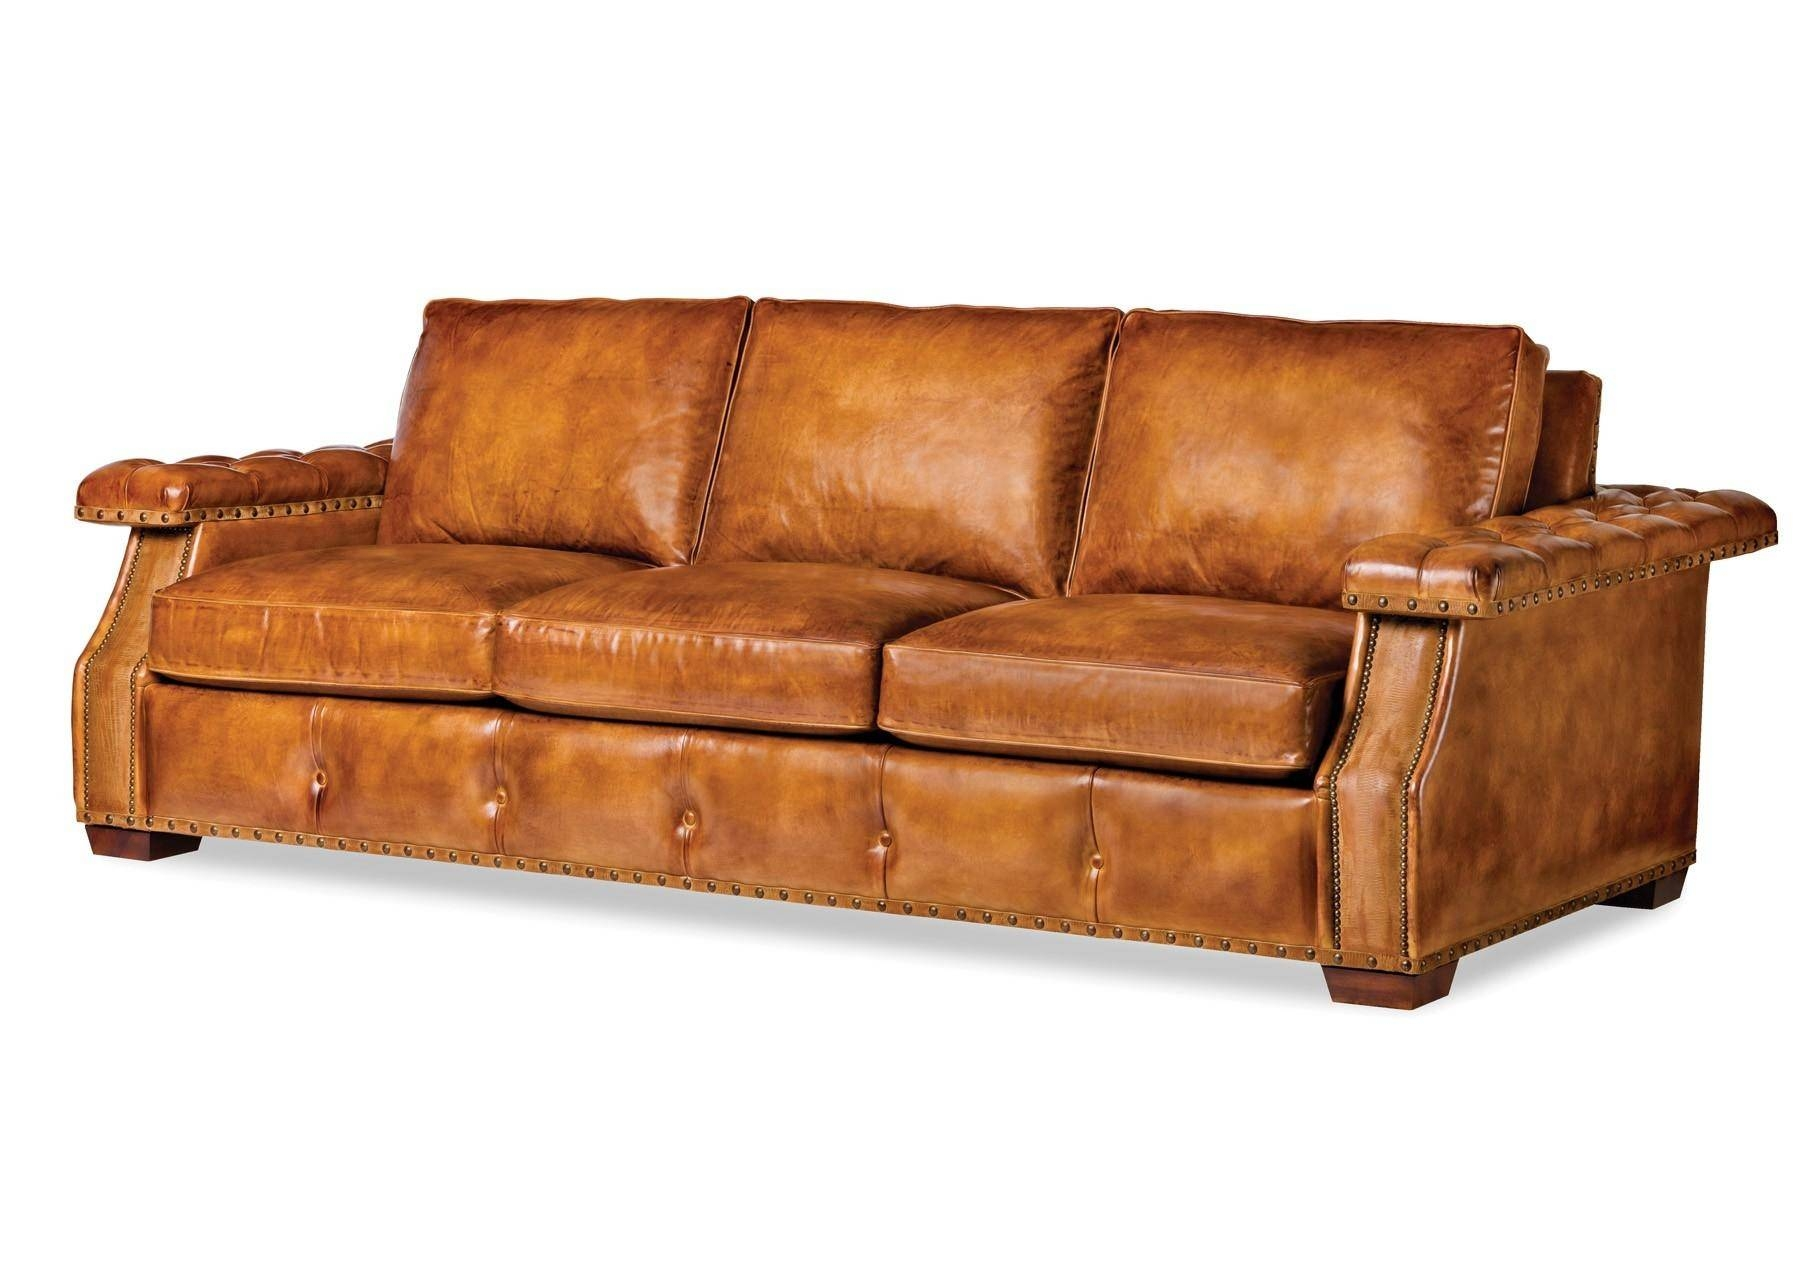 2017 Latest Camel Colored Leather Sofas | Sofa Ideas Within Camel Colored Leather Sofas (View 2 of 15)